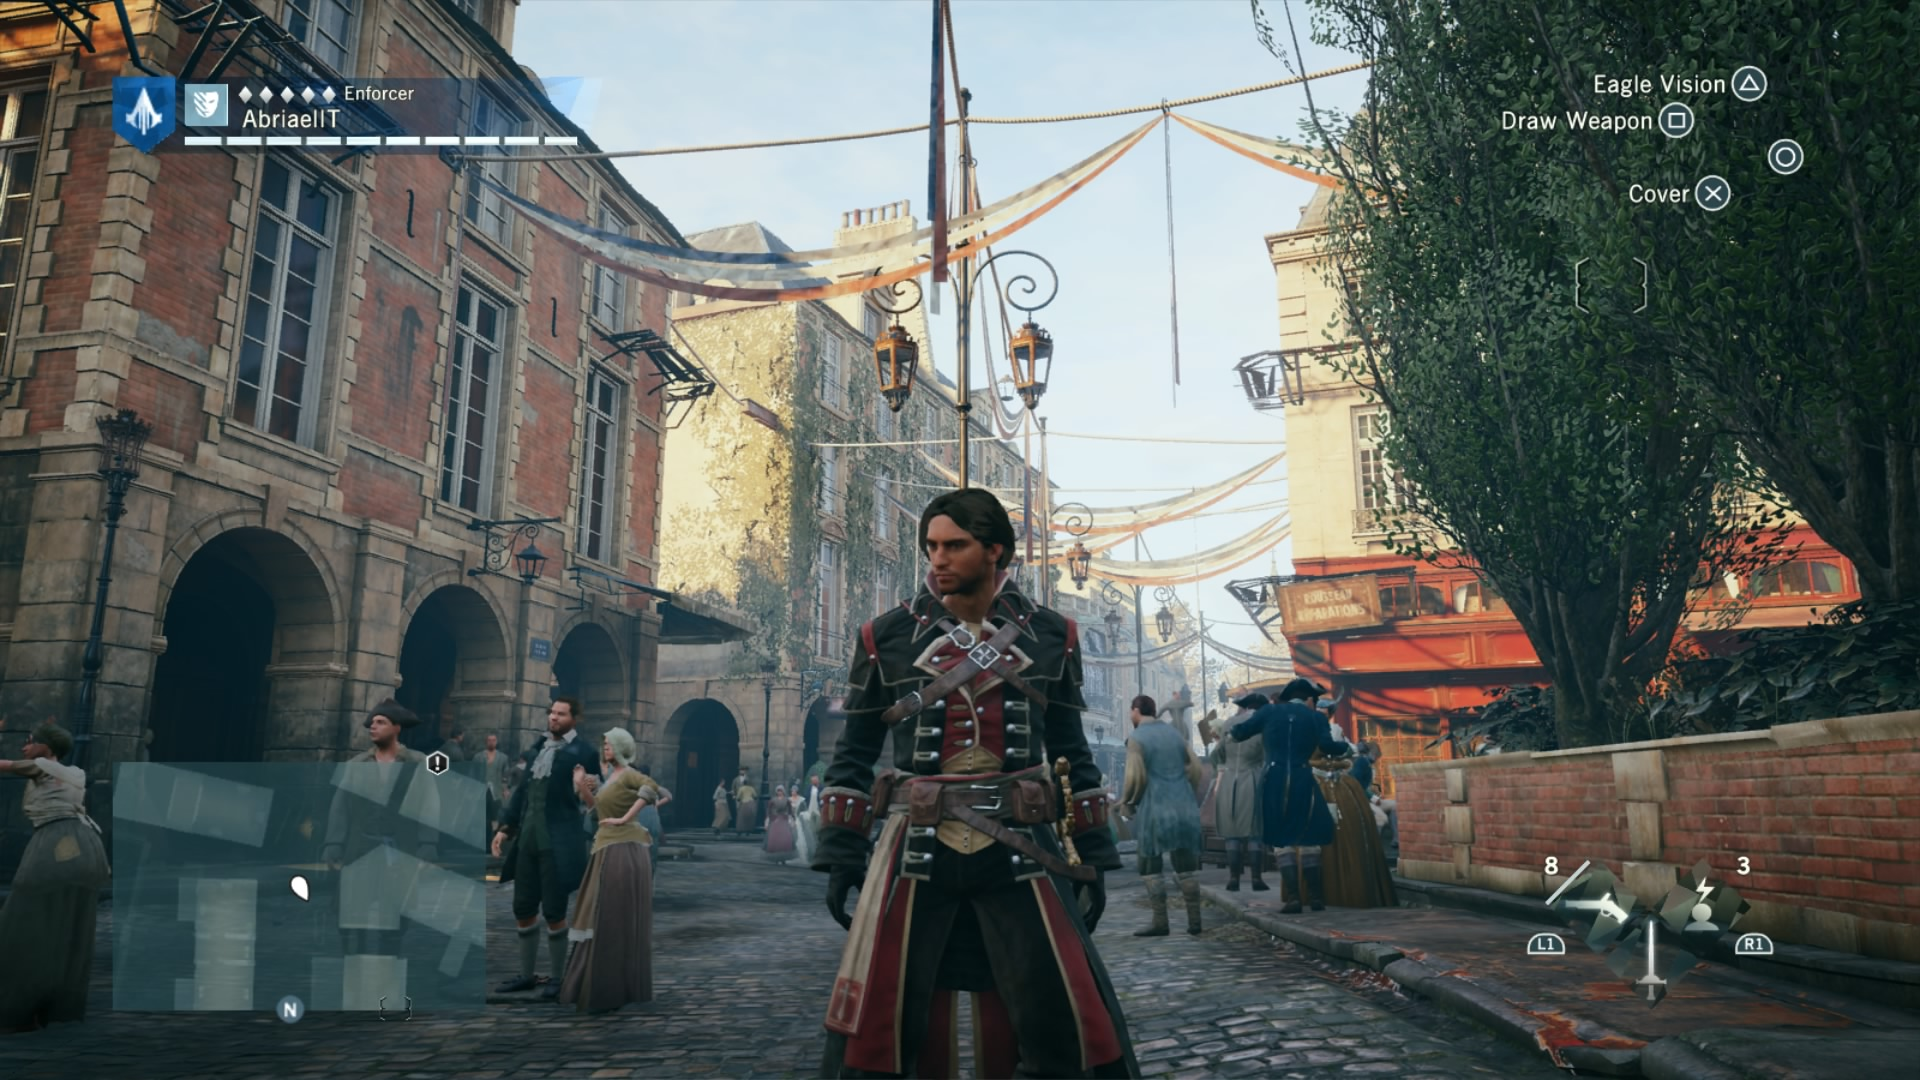 Assassins Creed Unity Hd Wallpaper Review Assassin S Creed Unity Post Patch Ambitious